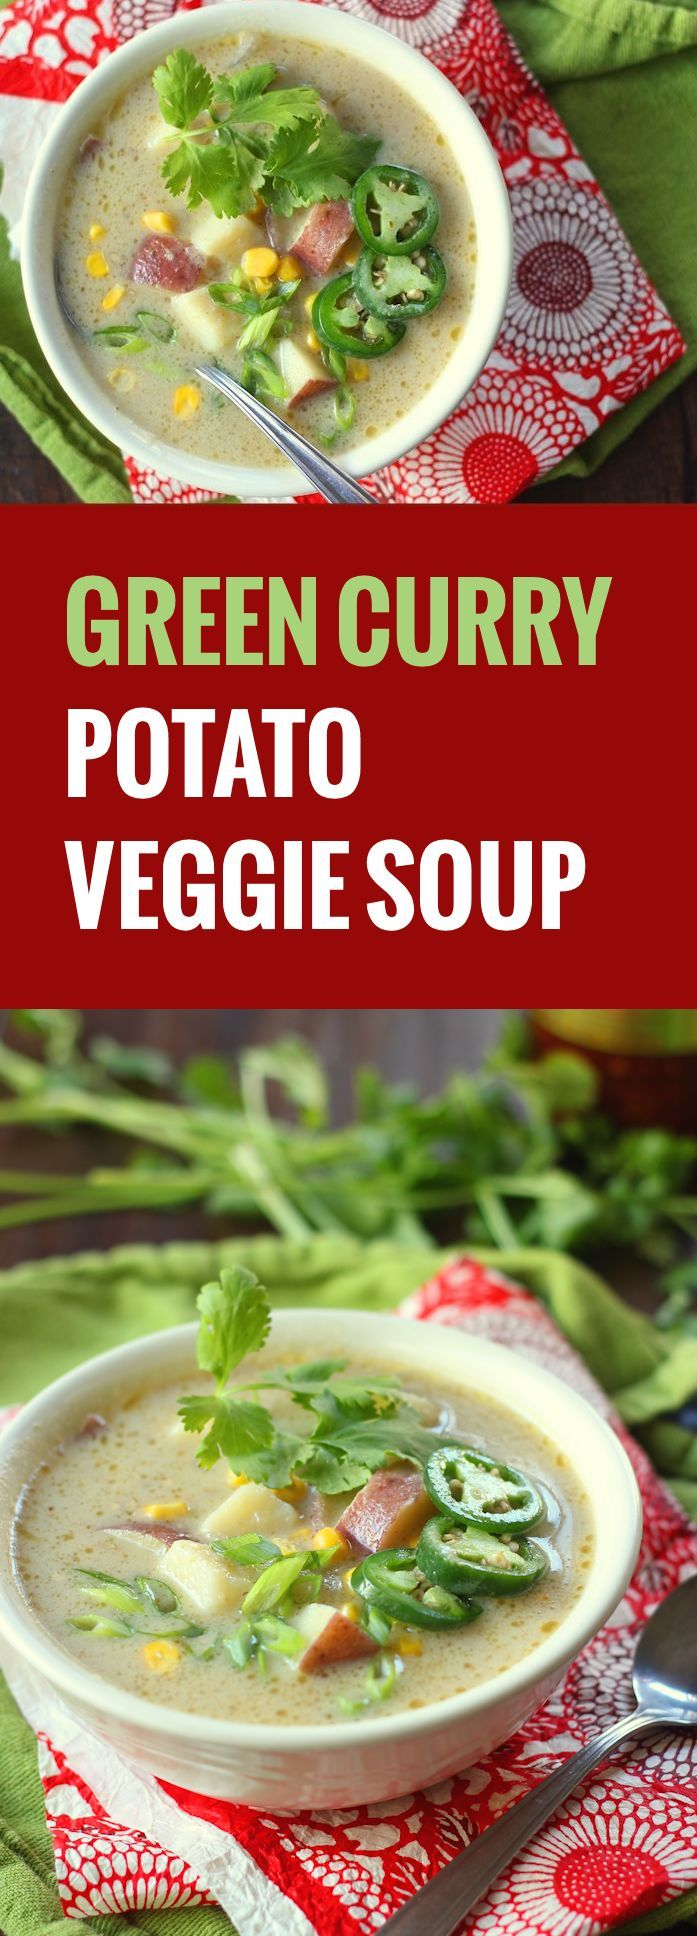 This rich and creamy green curry potato soup cooks up in fifteen minutes flat! Just throw a bunch of stuff in a pot and simmer.